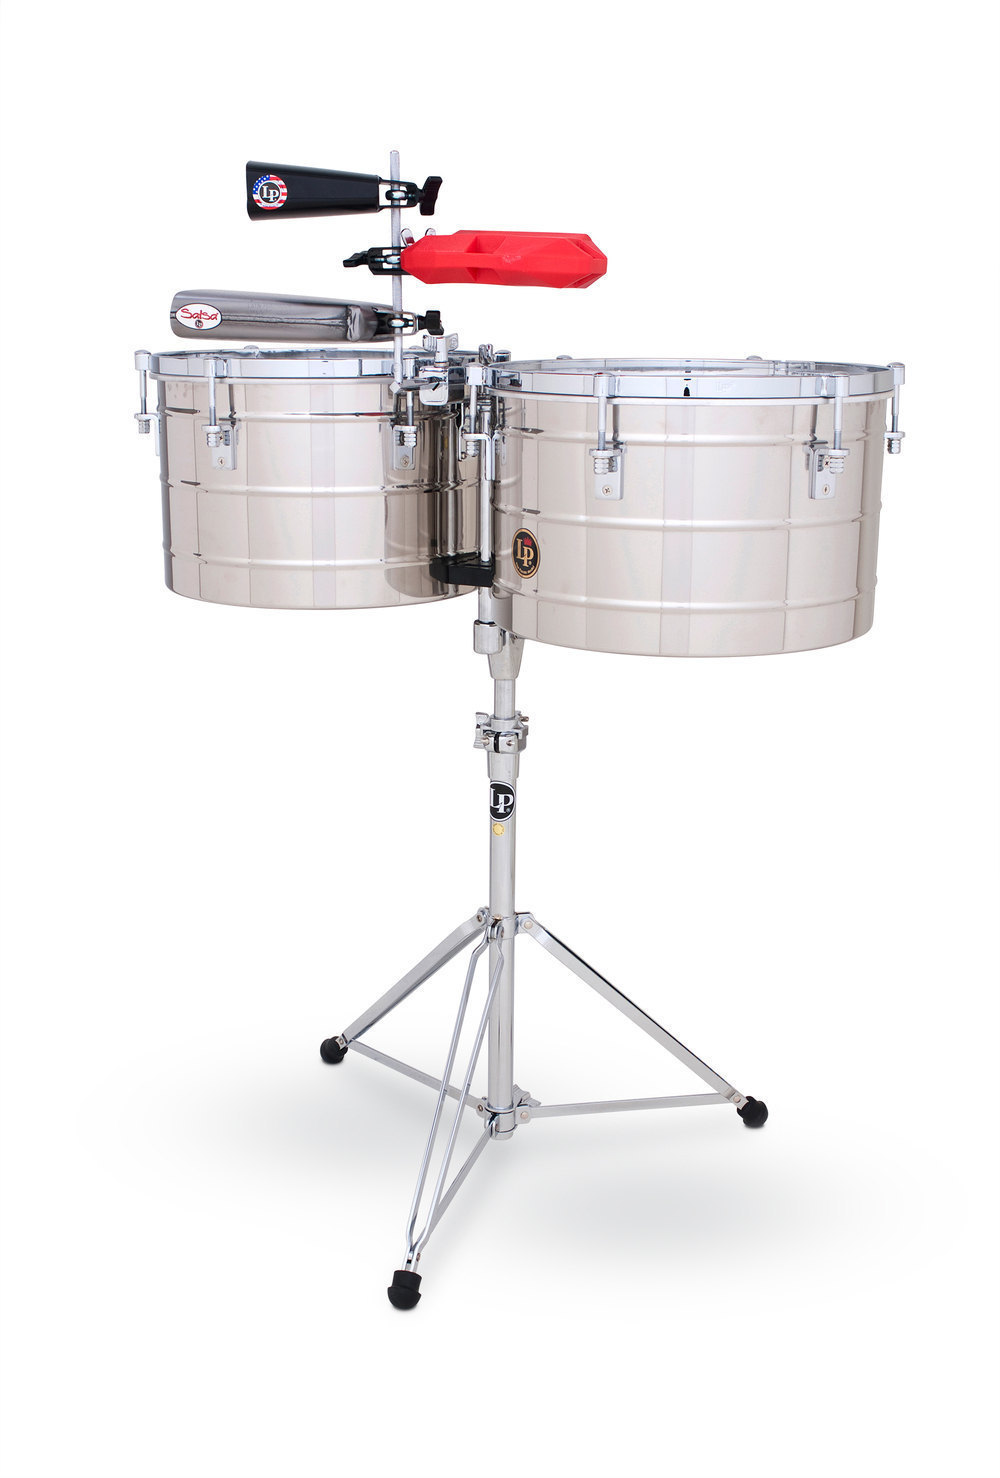 Billede af Timbals Tito Puente Thunder Timbs Brass